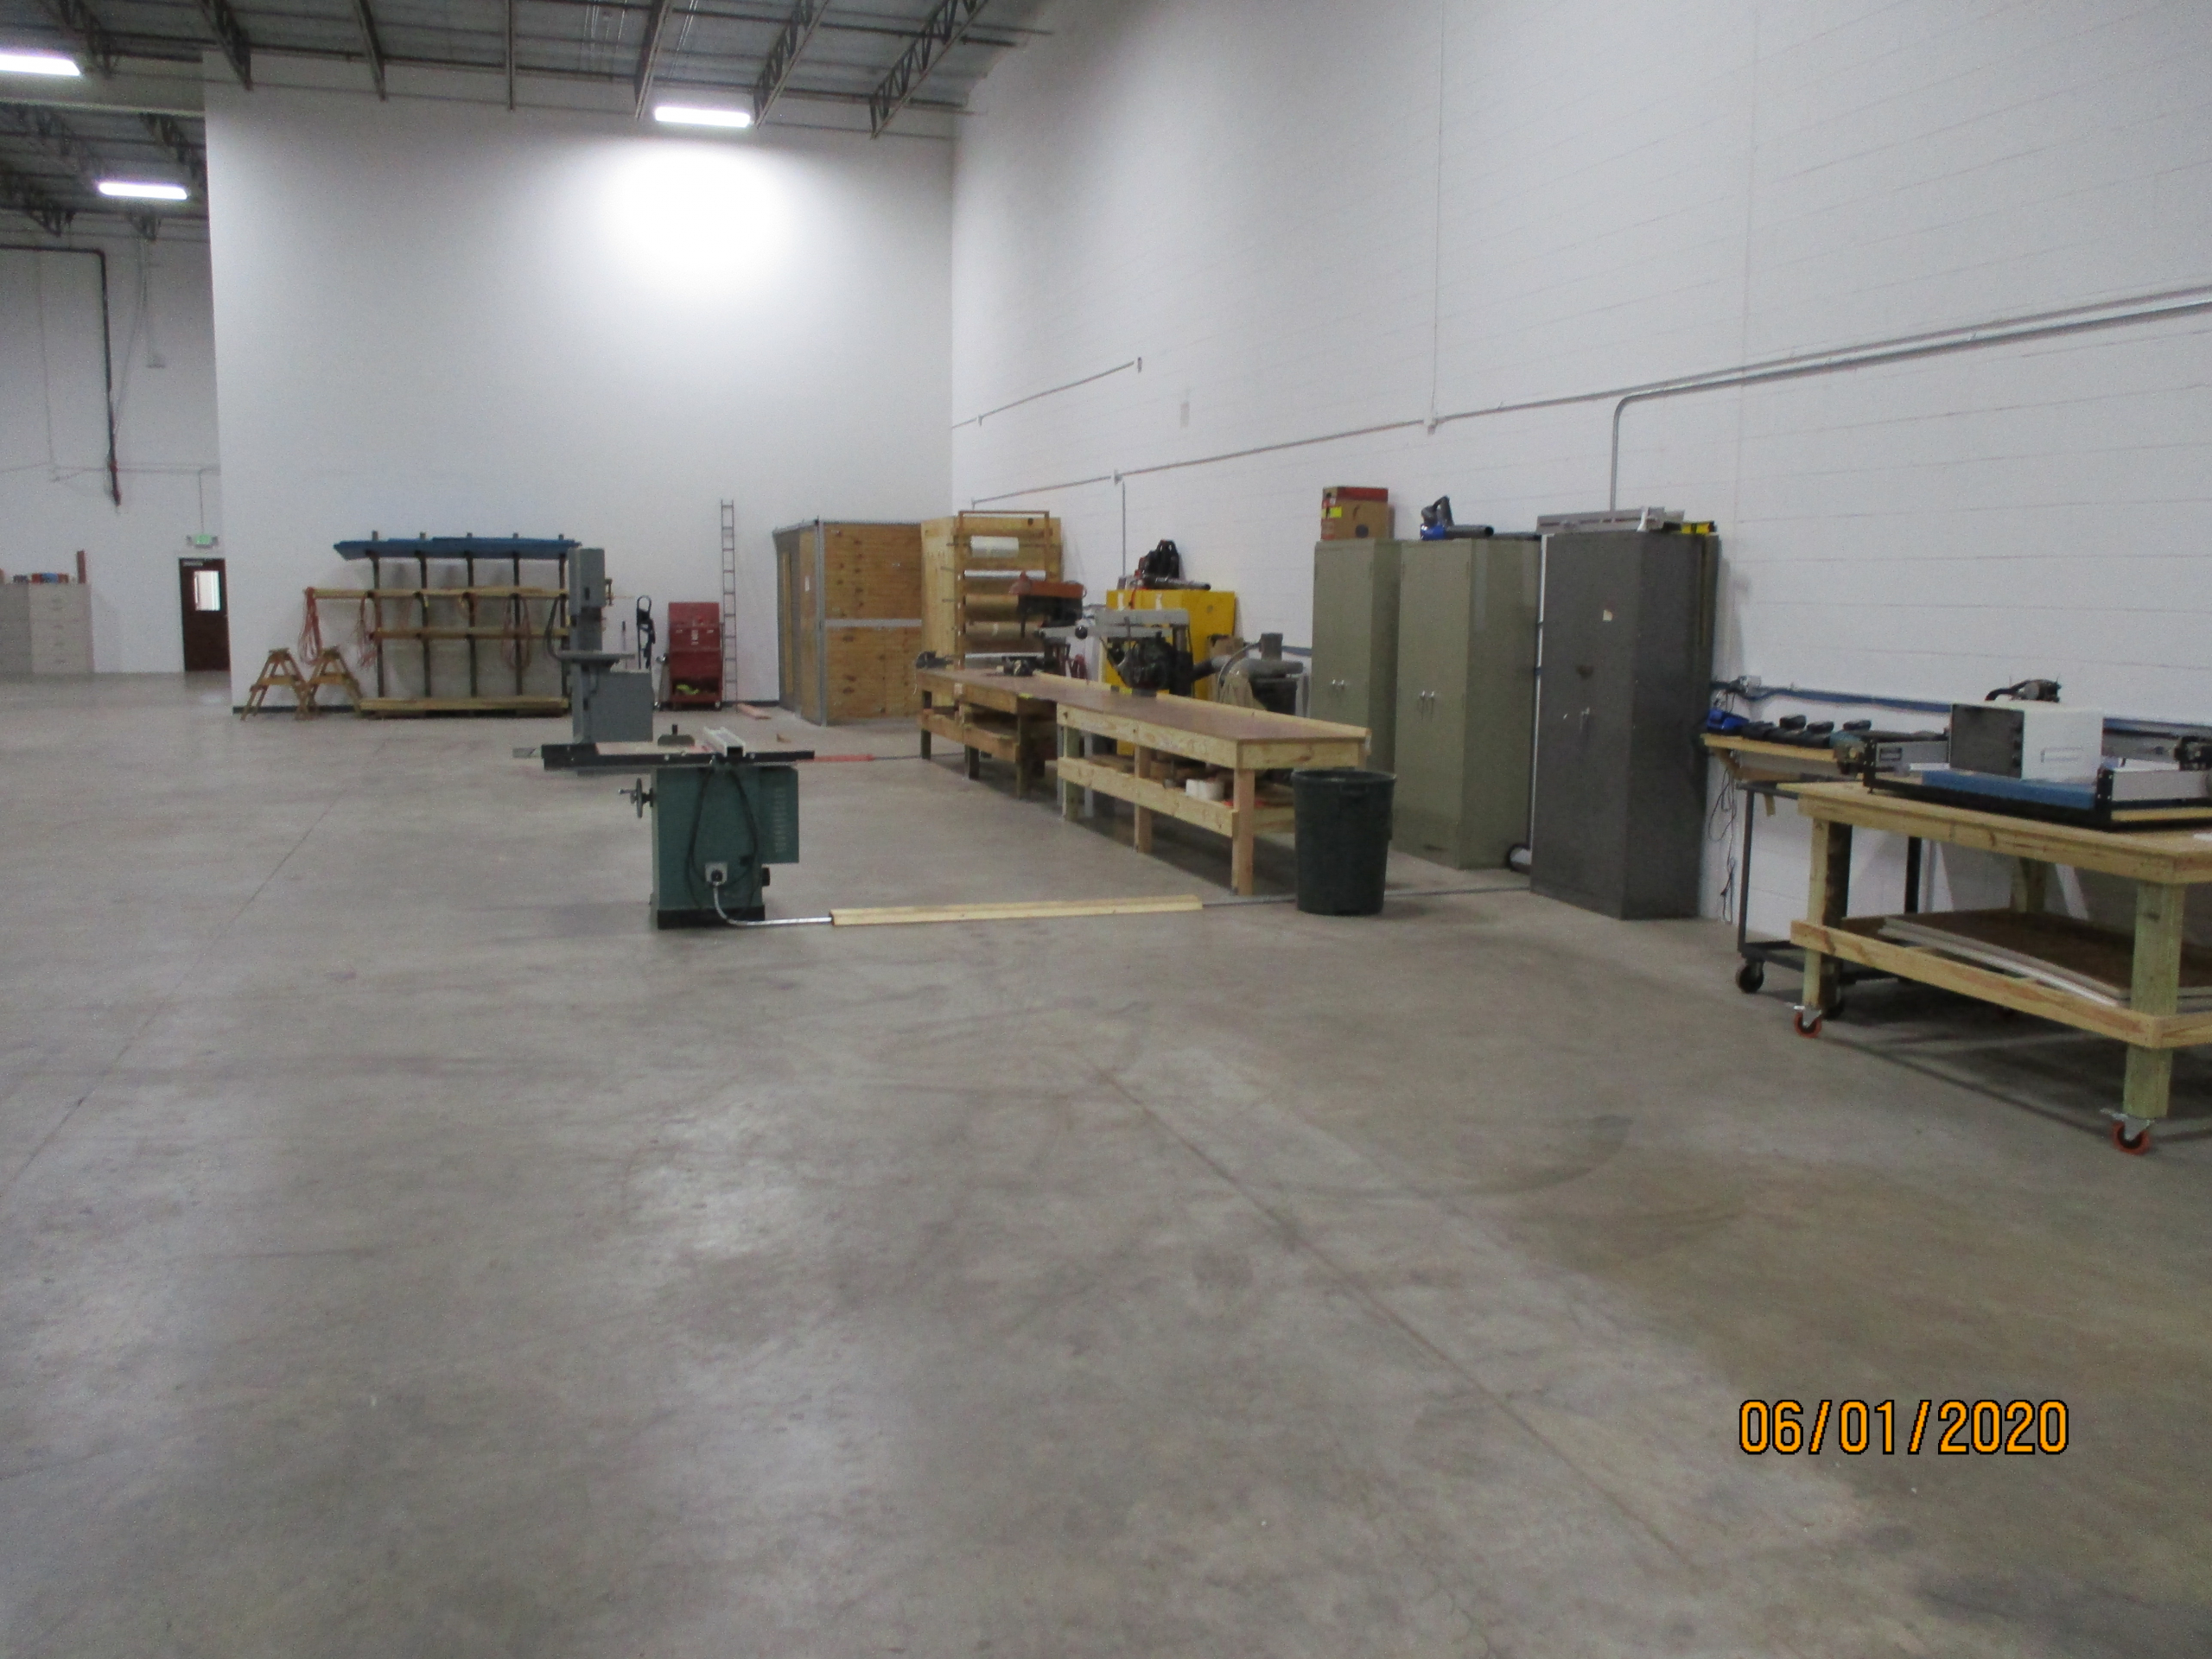 Crating and Packaging area